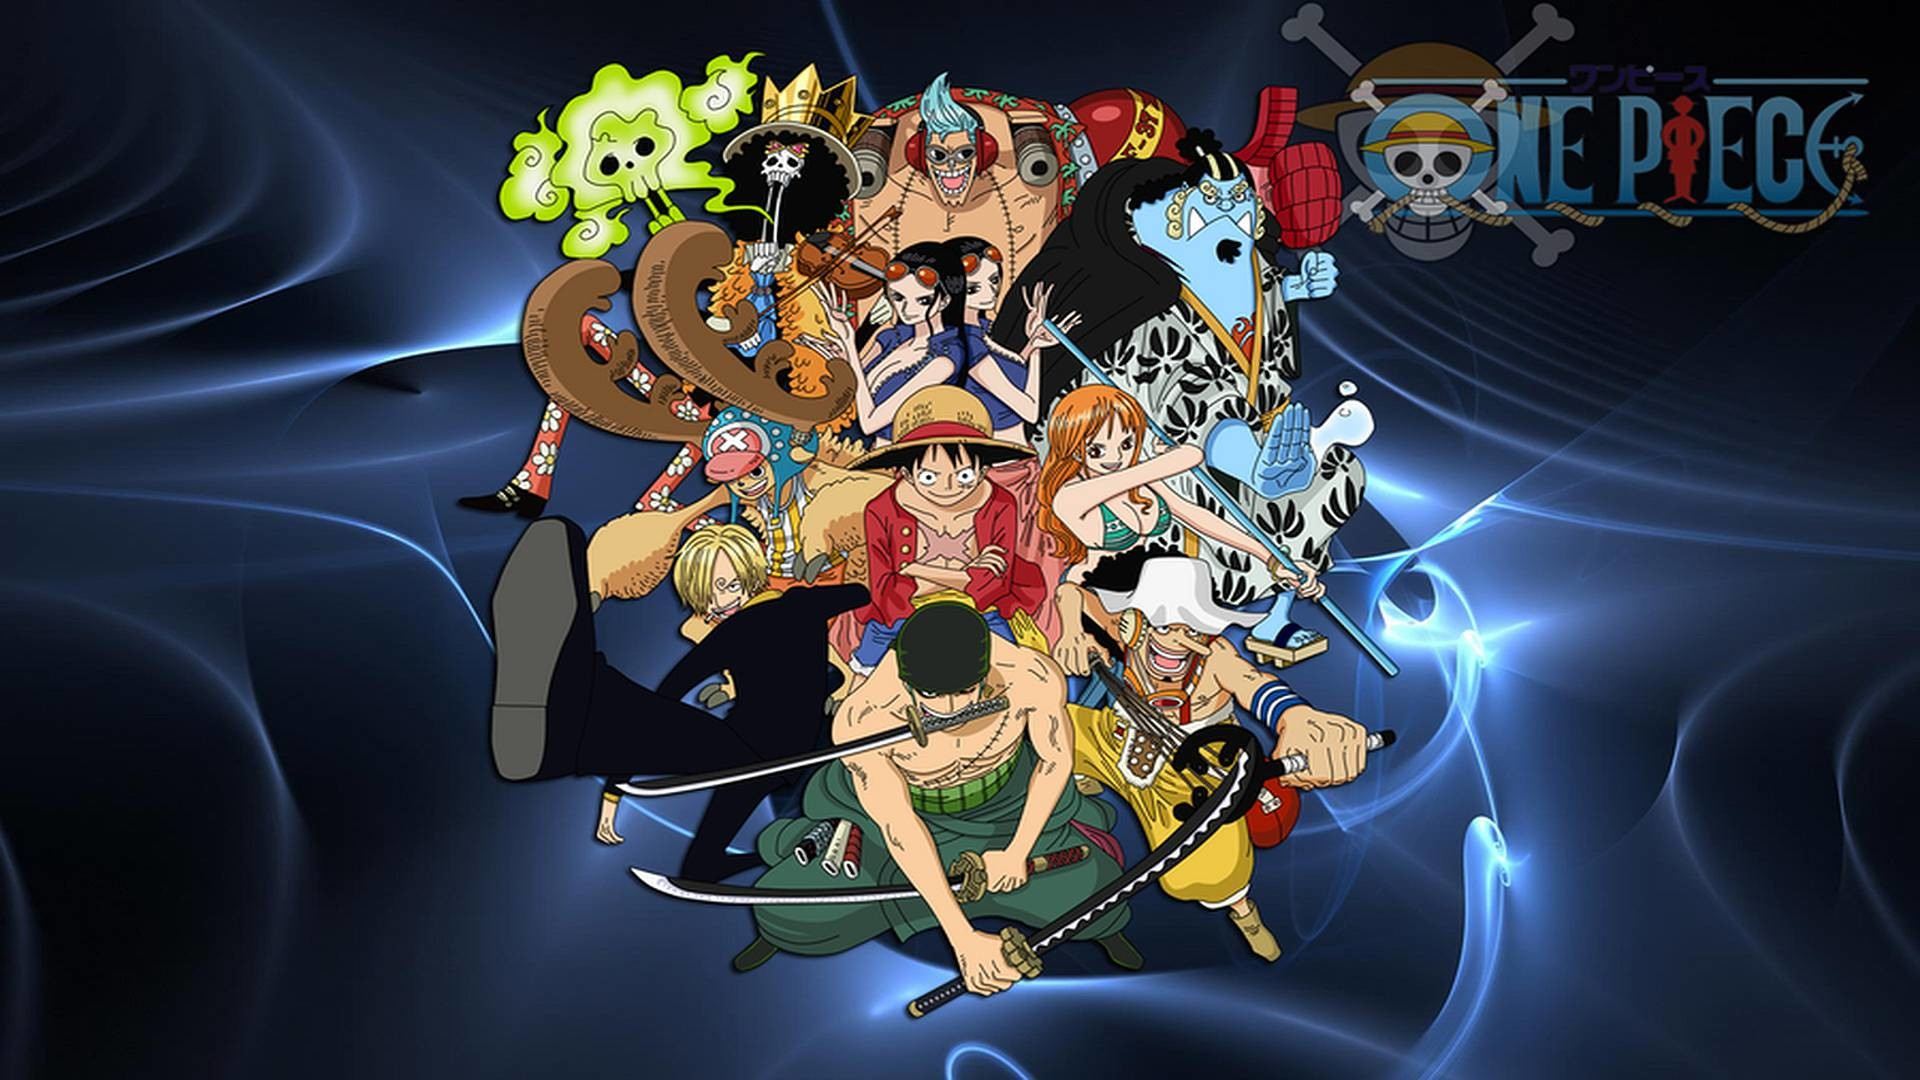 1920x1080 One Piece Luffy And Crew Background For Computer | Cartoons Images